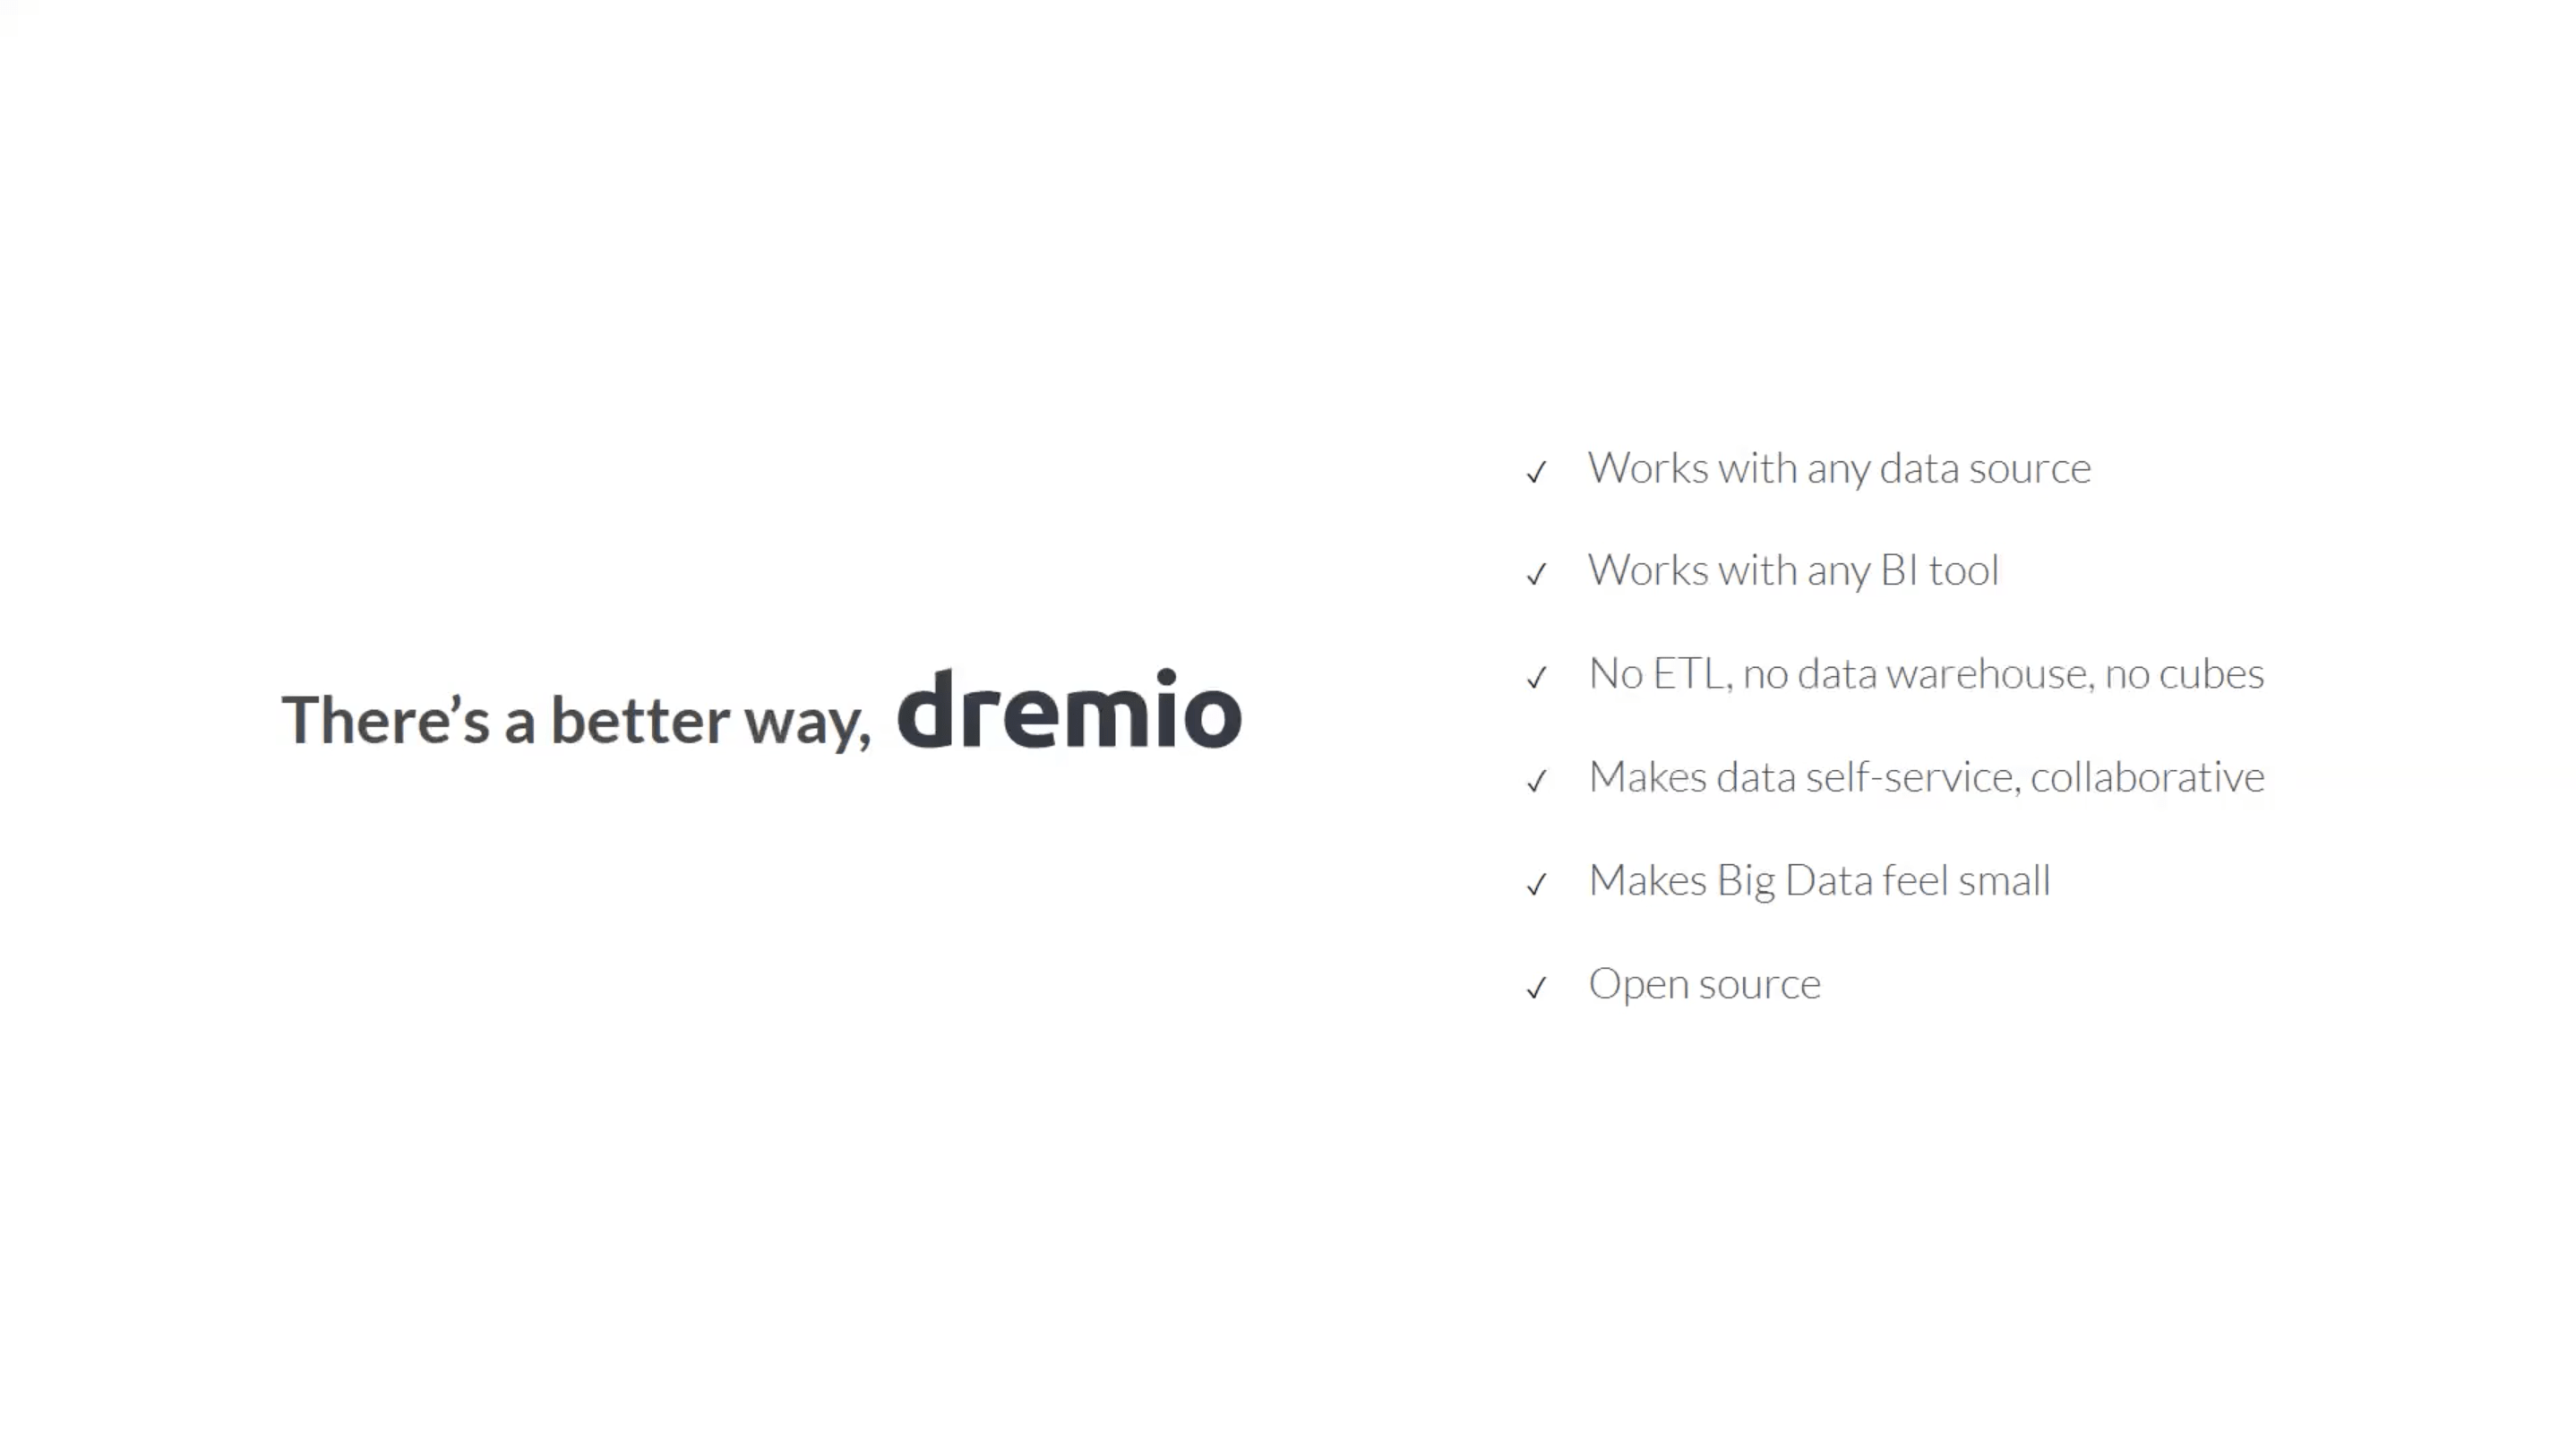 cloud analytics options with Dremio